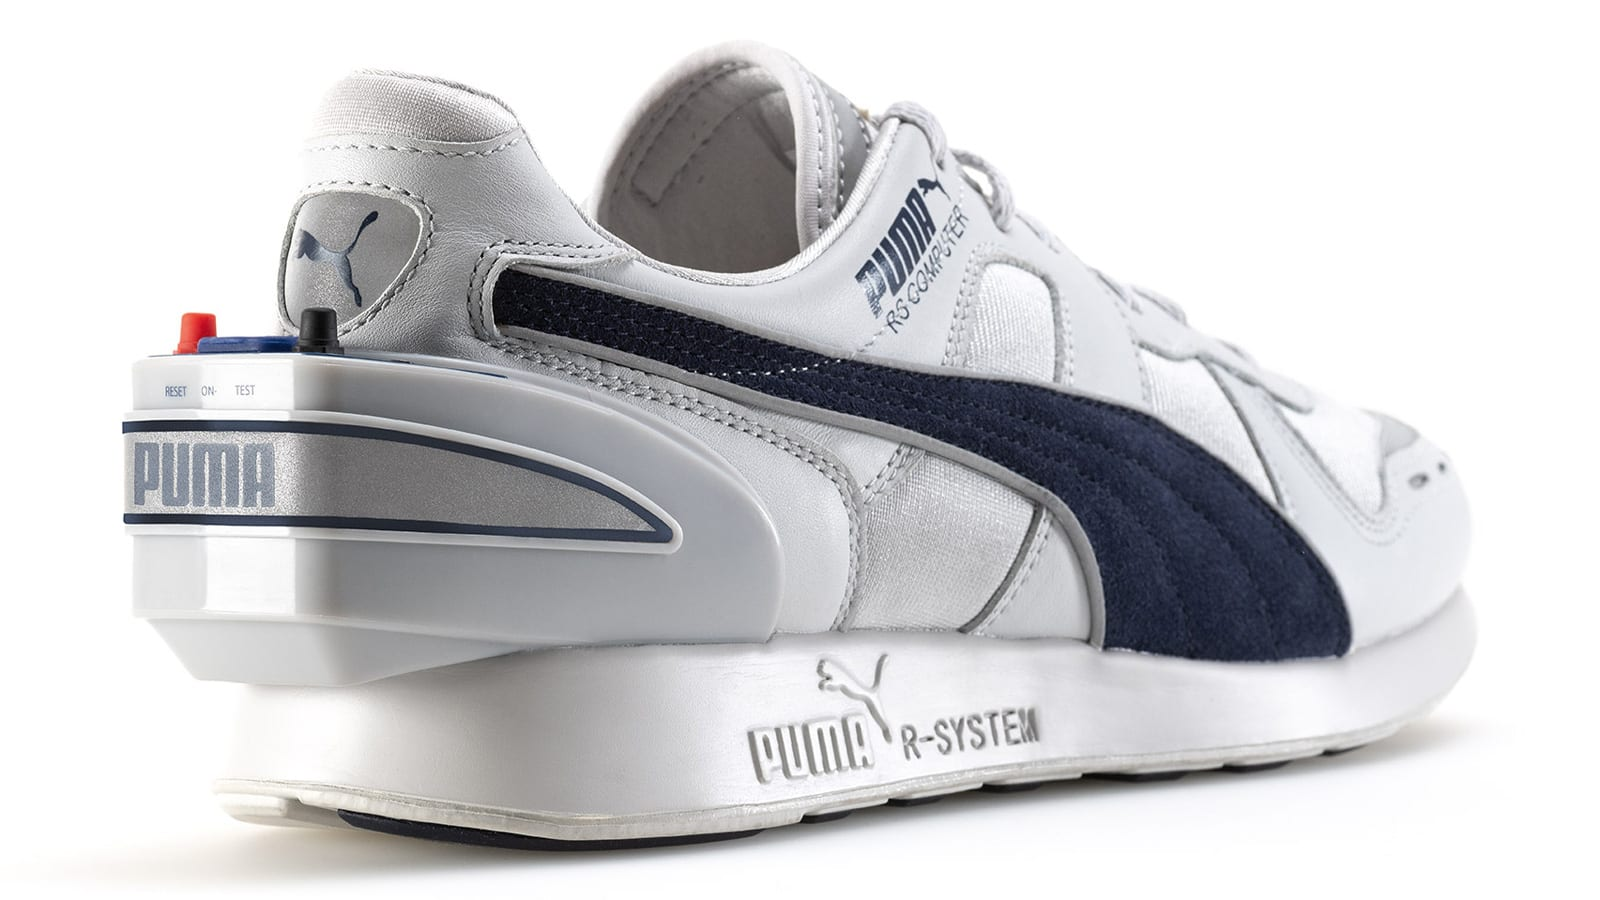 9d974e286d3 Puma revives its 1986 smart shoe for the modern era